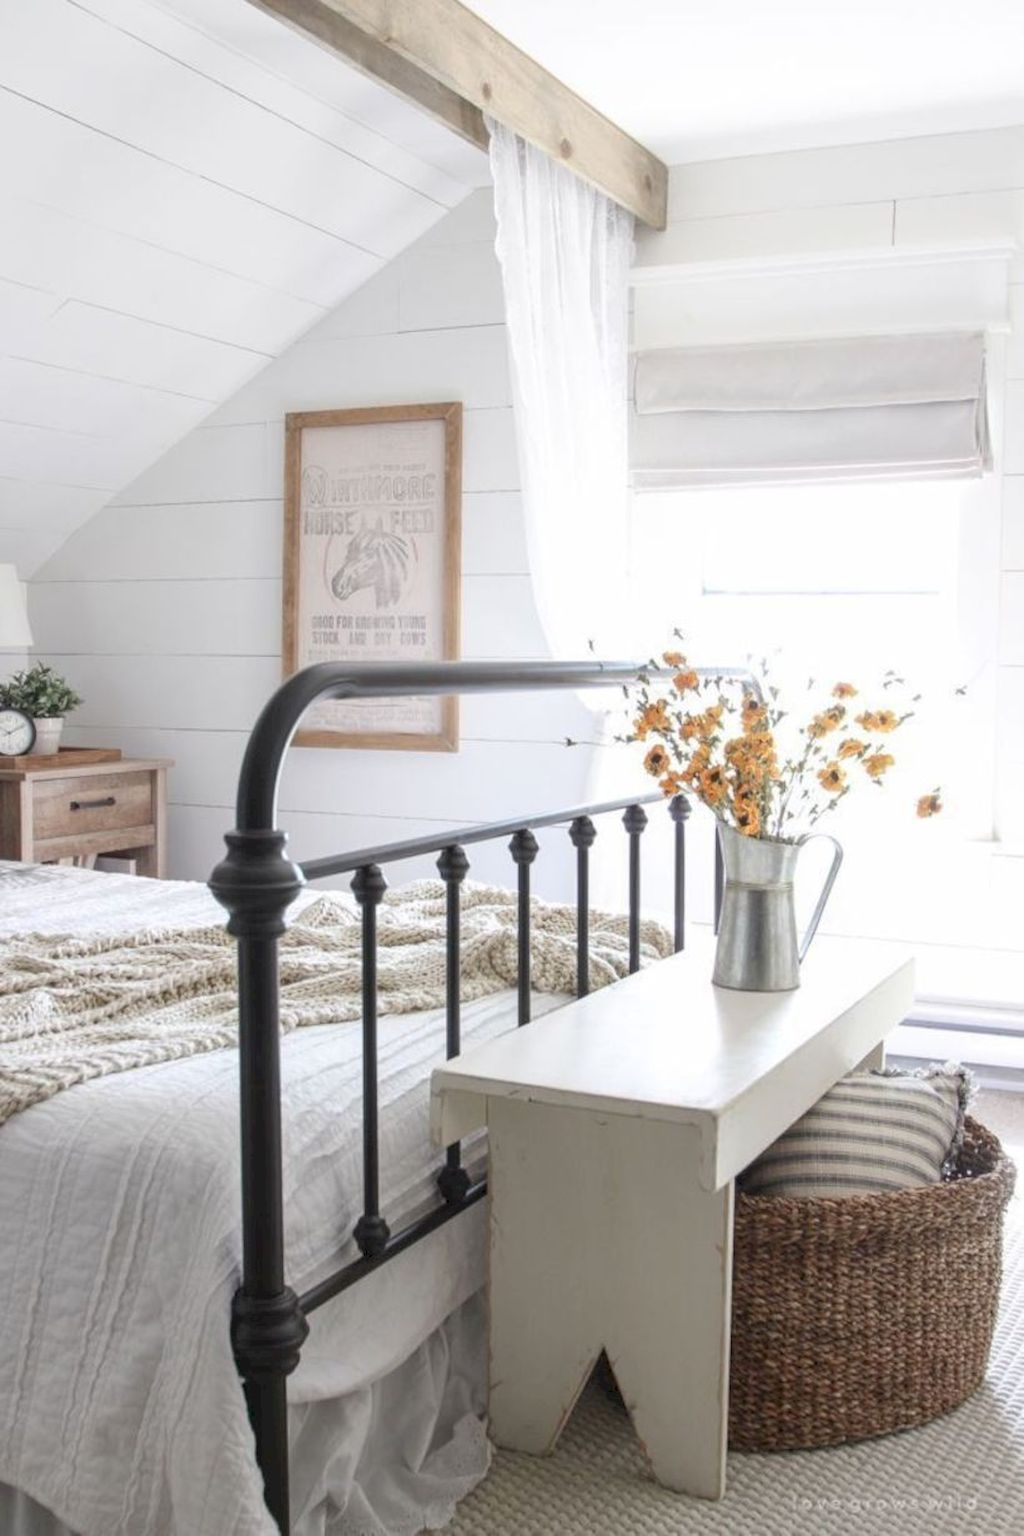 Vintage Farmhouse Bedroom Decor Ideas On A Budget To Try 21